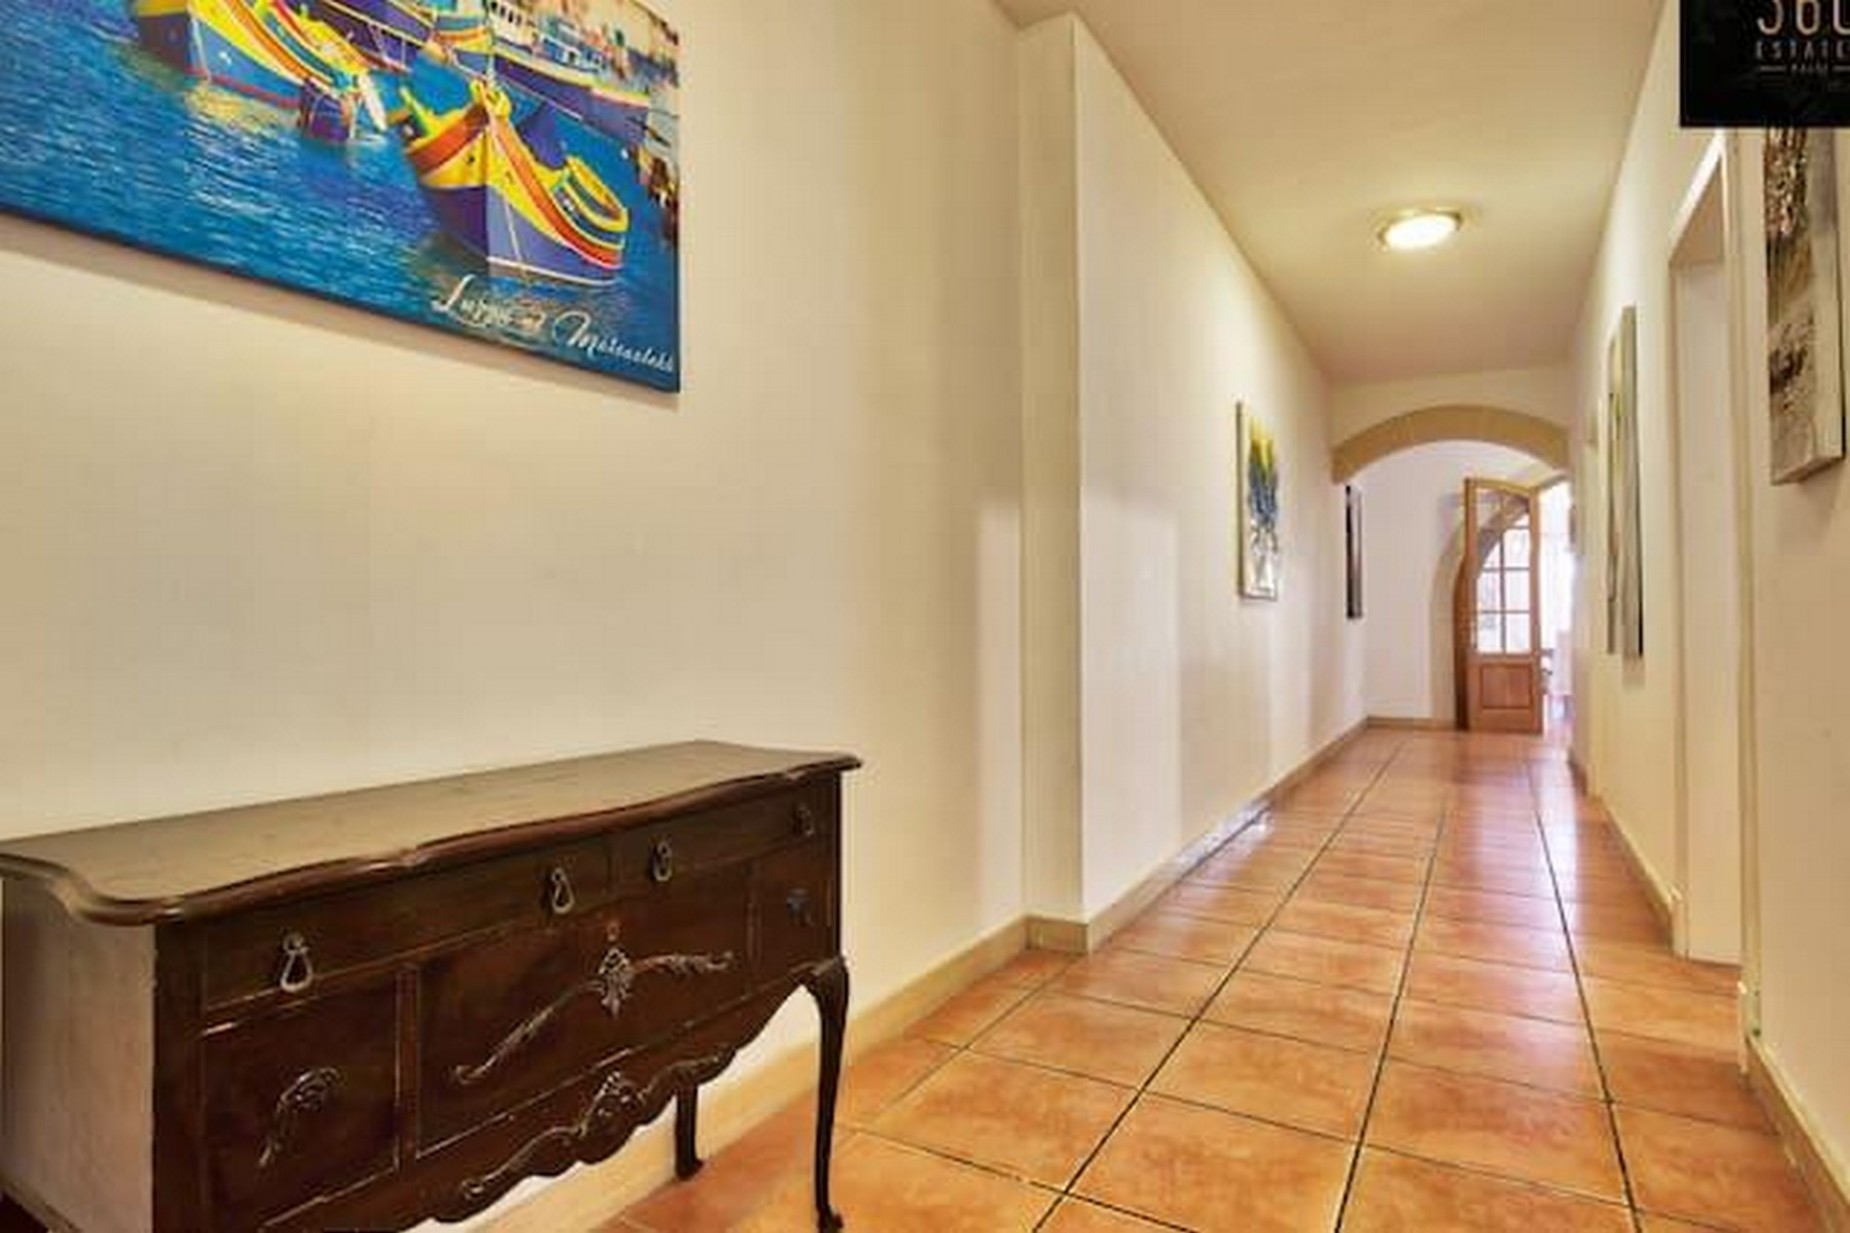 4 bed Apartment For Rent in St Julian's, St Julian's - thumb 11